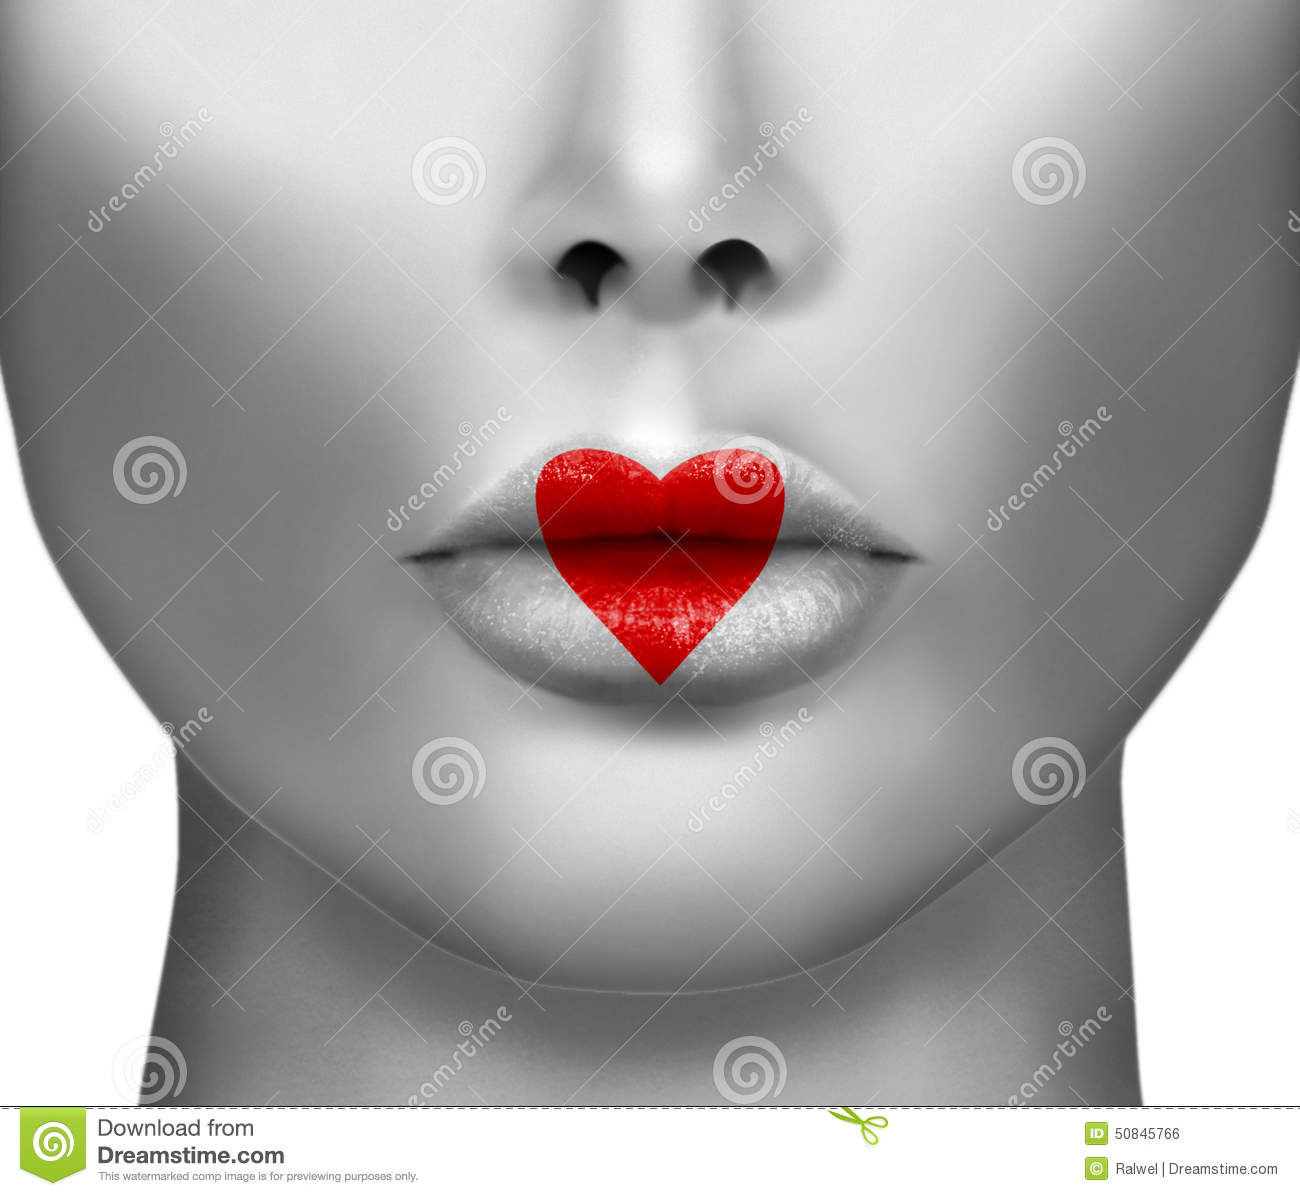 Kiss And Makeup Day: Sexy Lips With Heart Shape Stock Photo